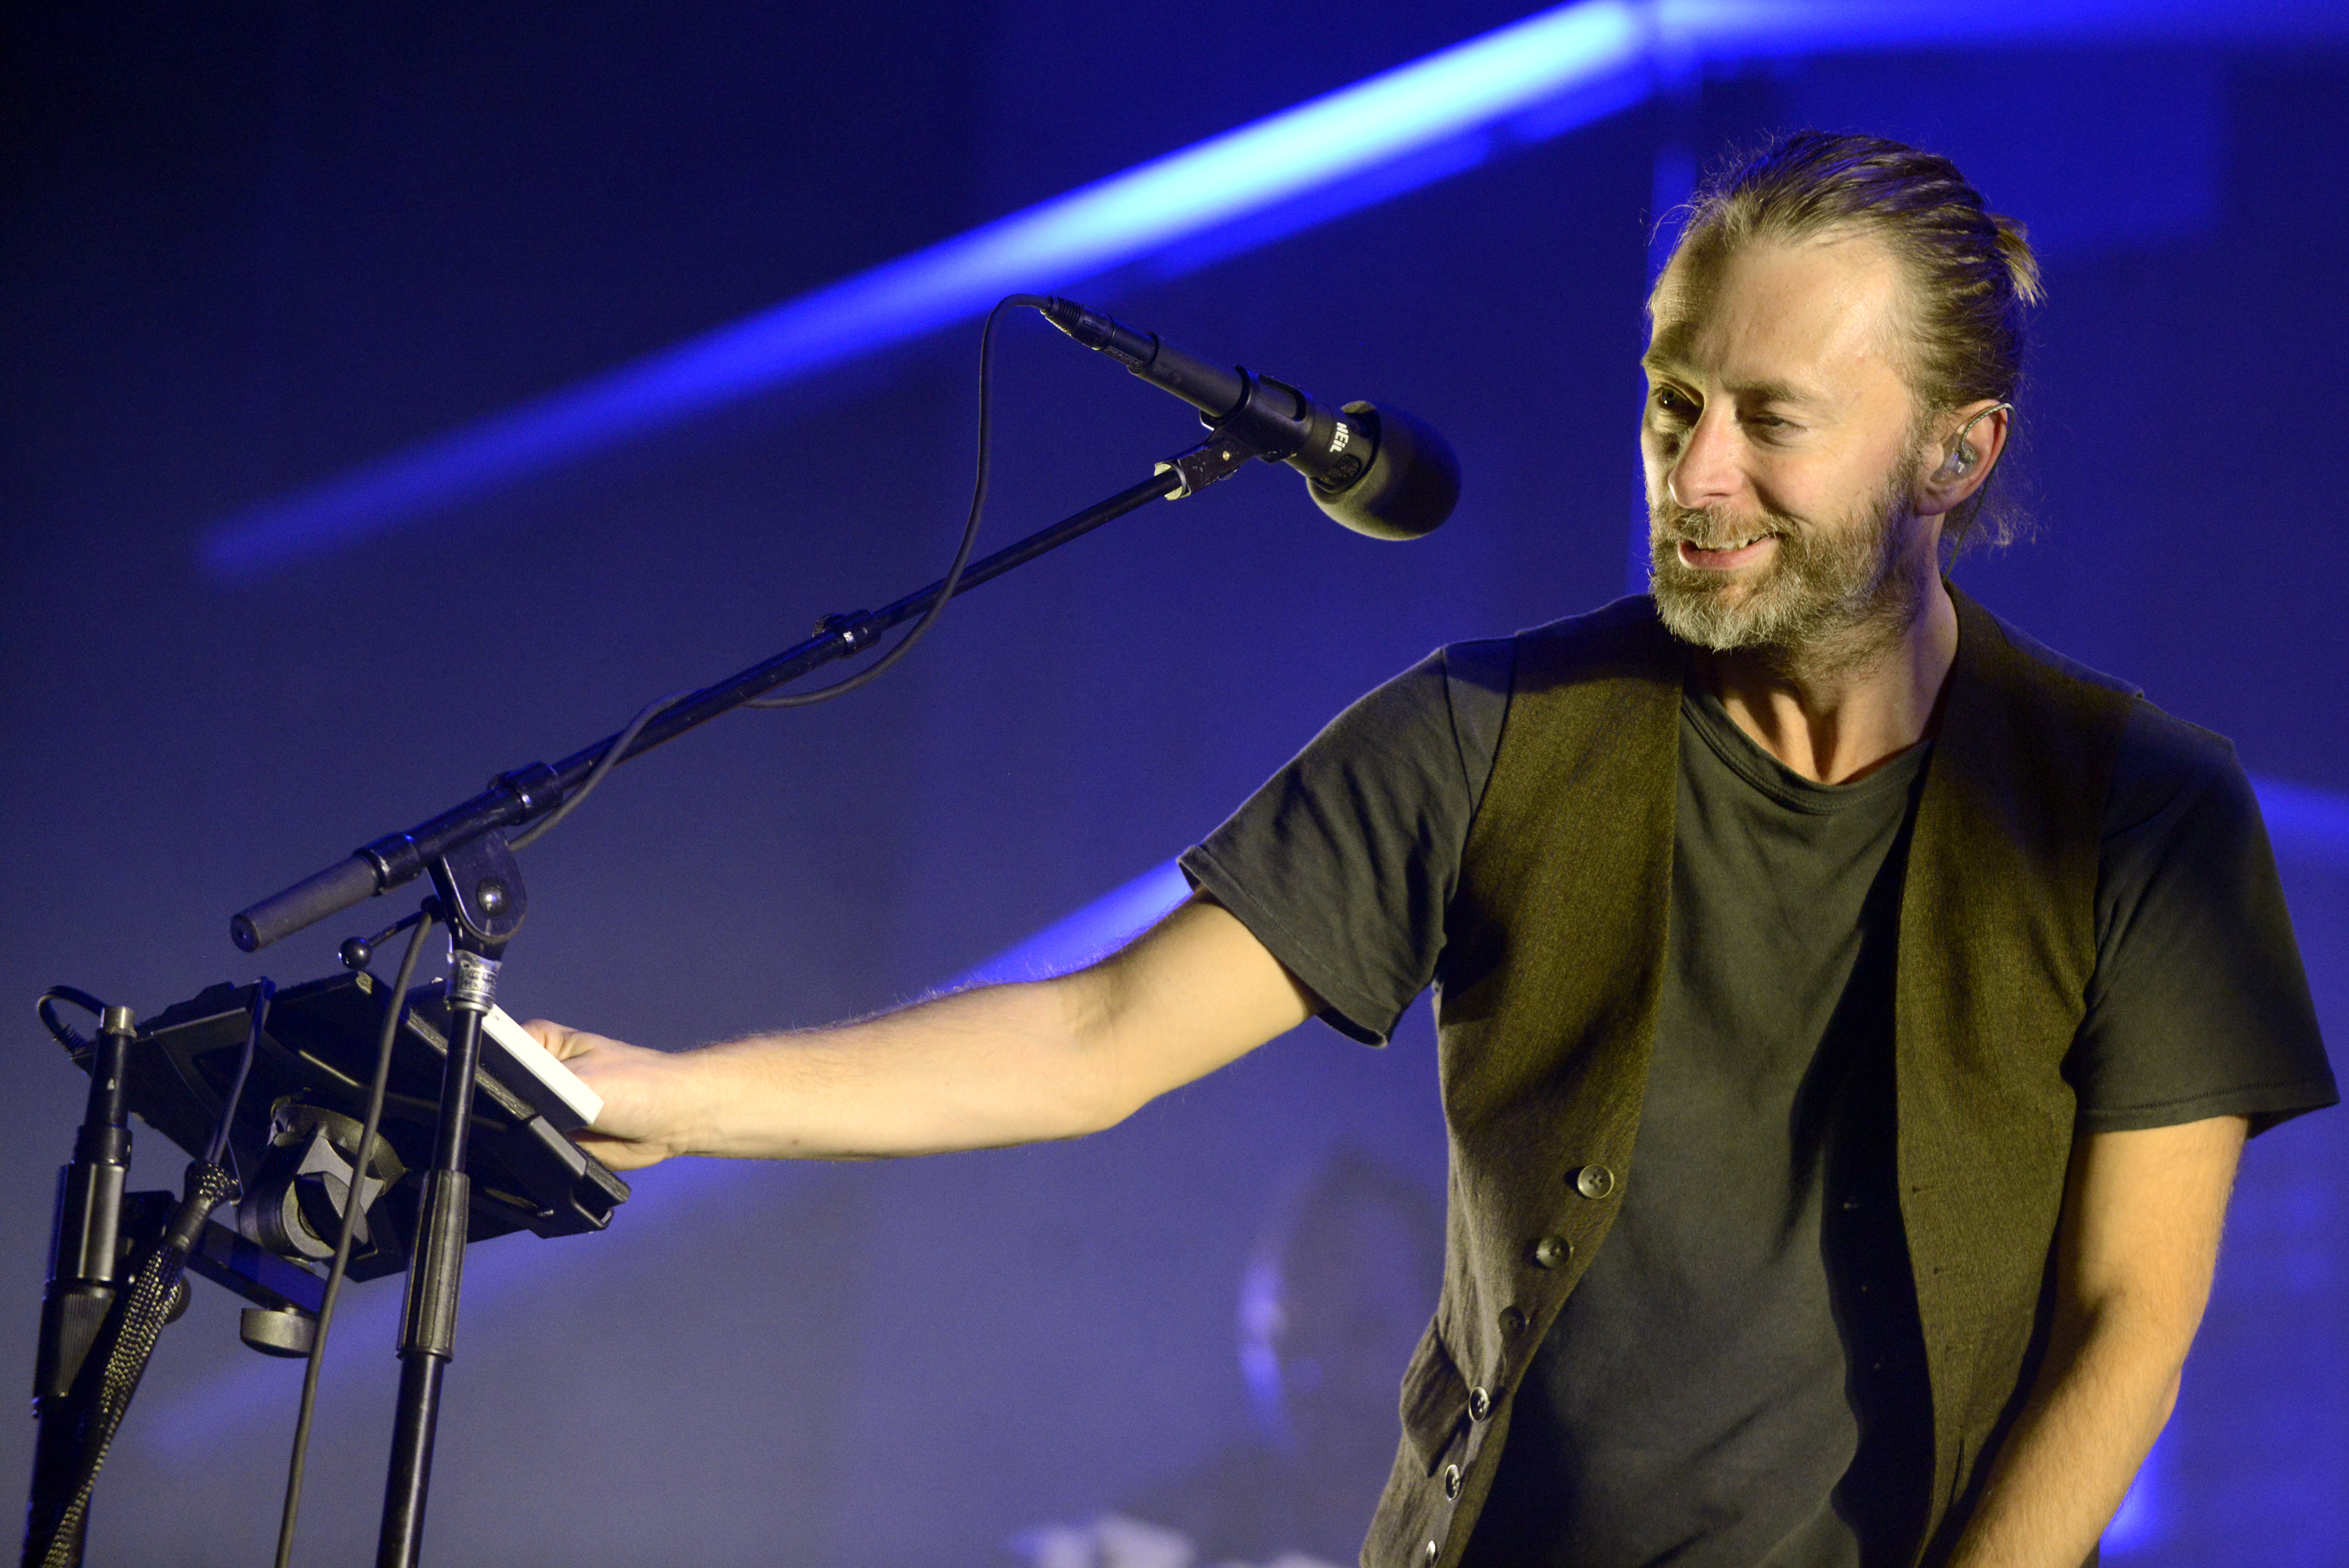 AUSTIN, TX - OCTOBER 6: Thom Yorke of Atoms for Peace performs as part of the Austin City Limits Music Festival Day Three at